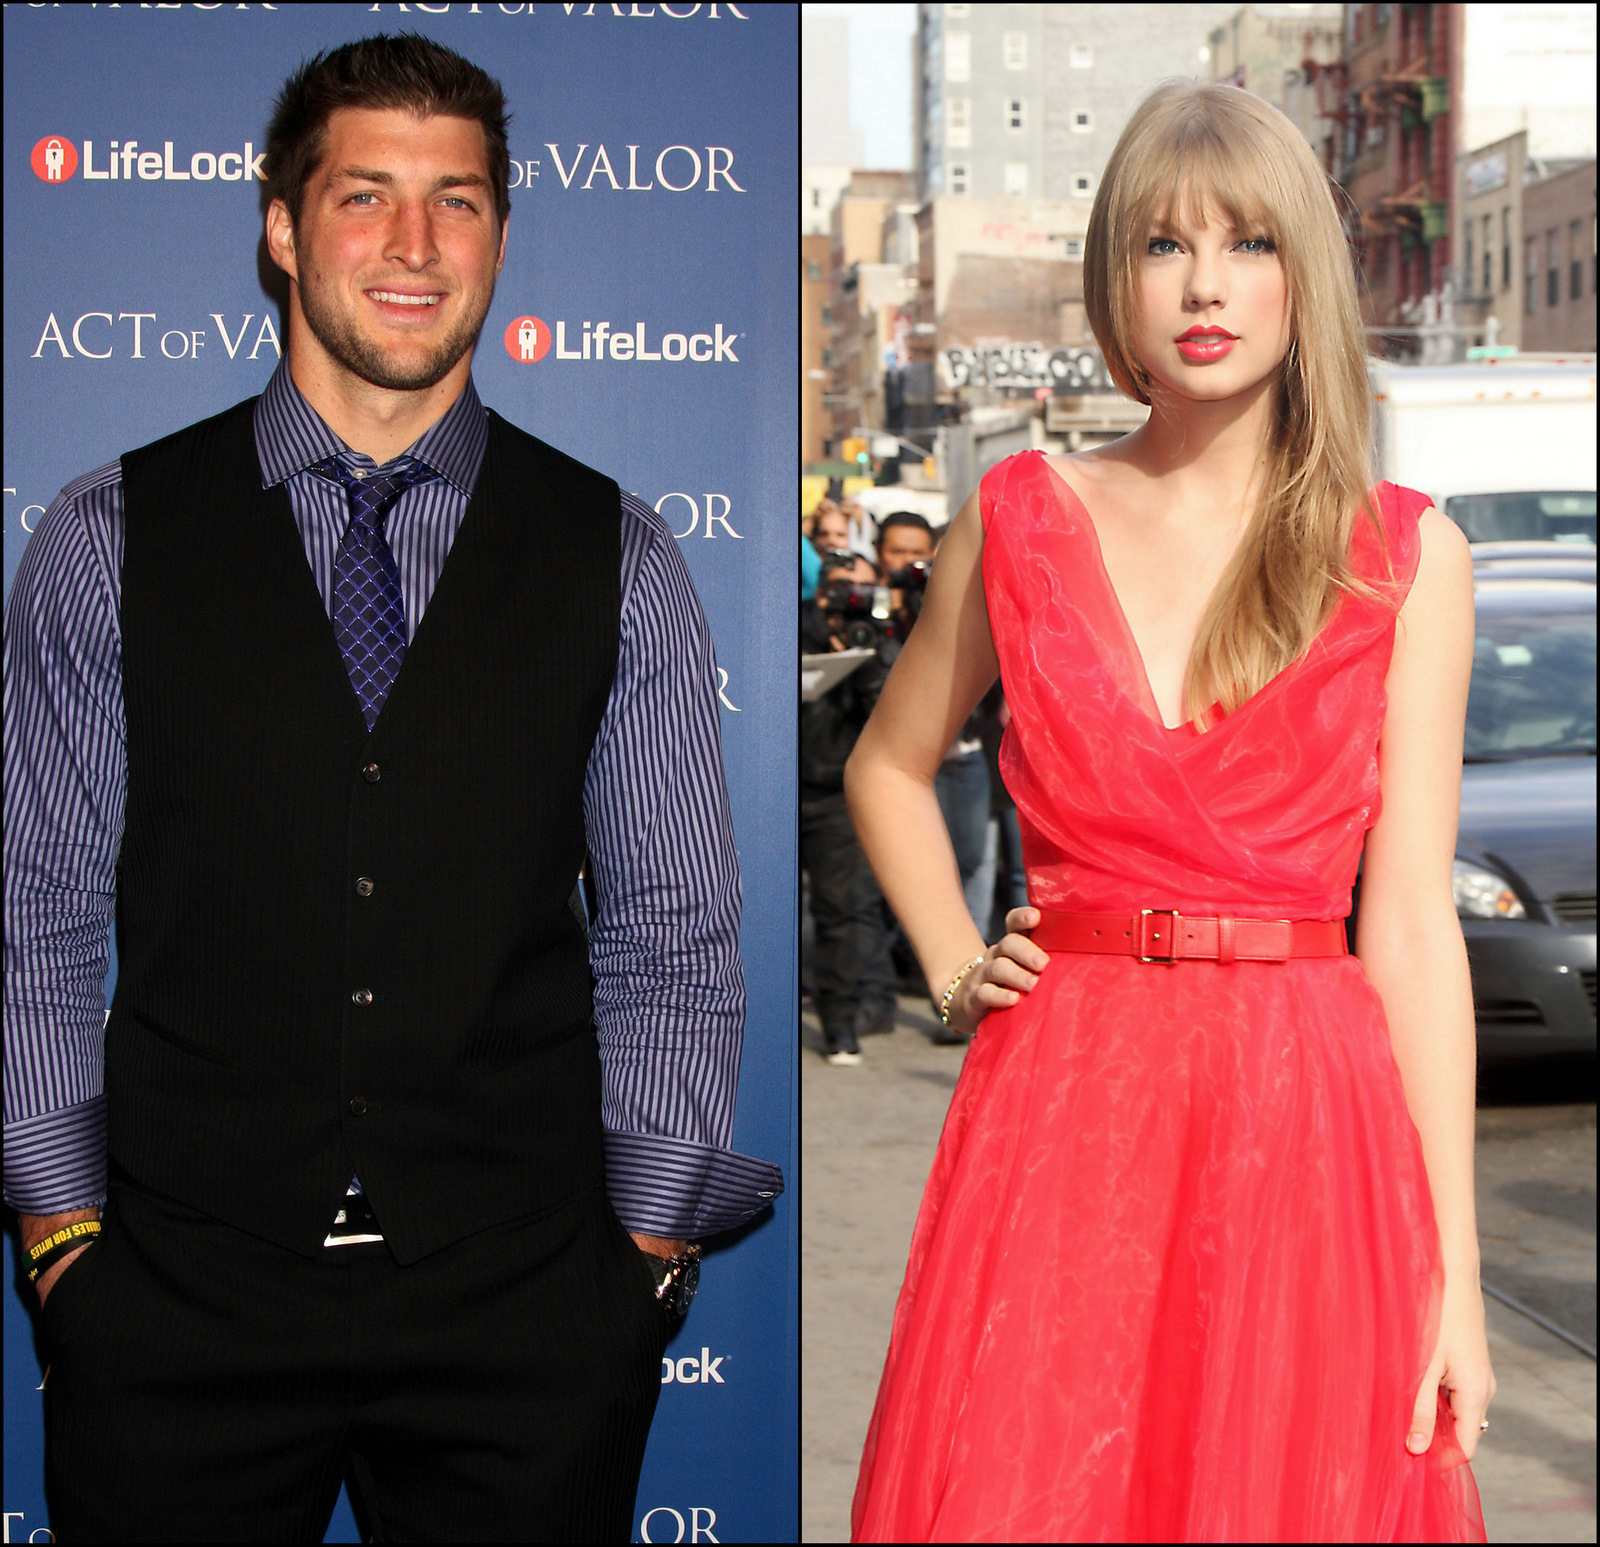 Tebow Swift